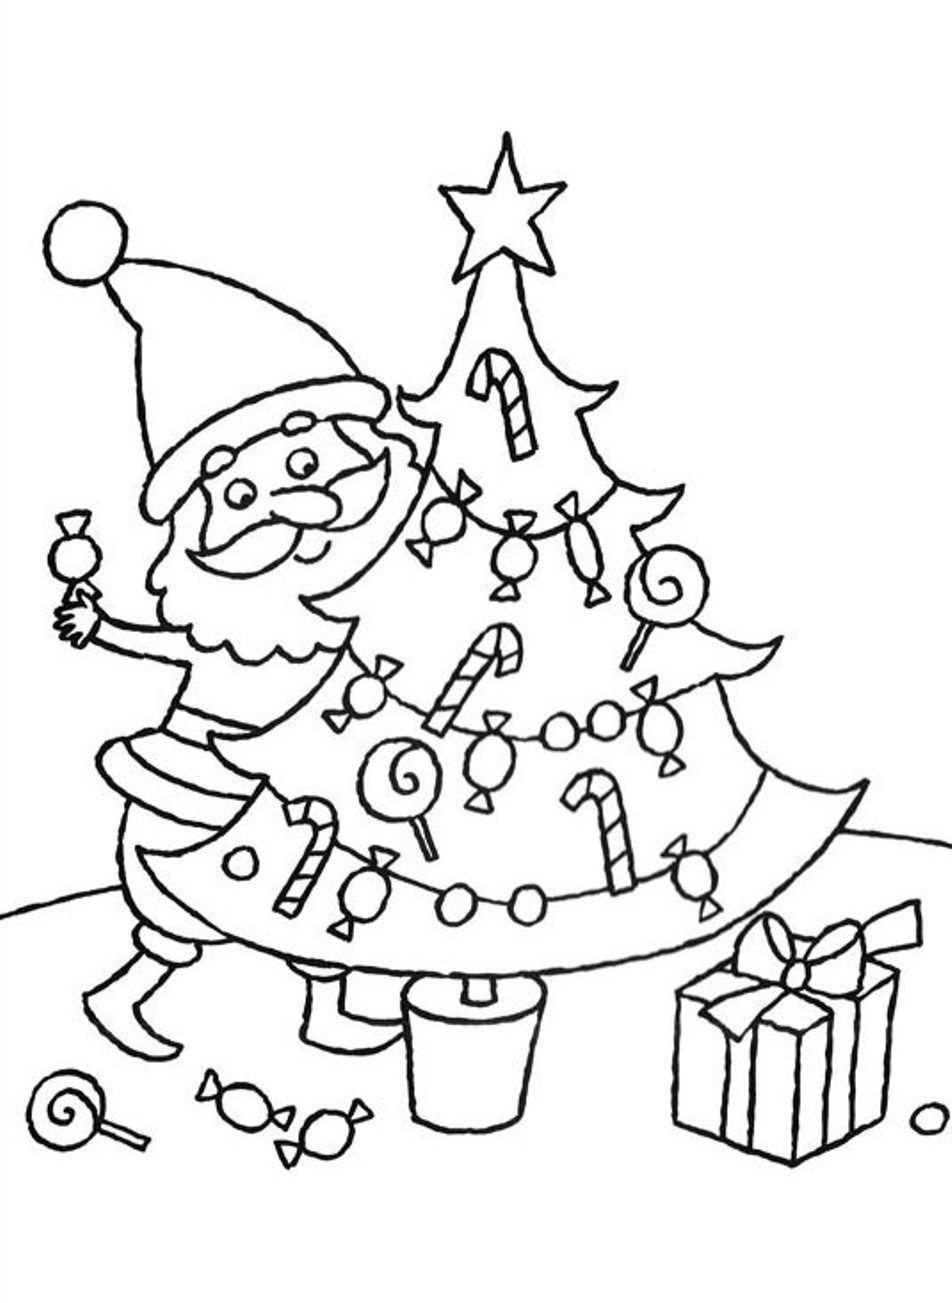 Cristmas Tree Drawing at GetDrawings.com | Free for personal use ...